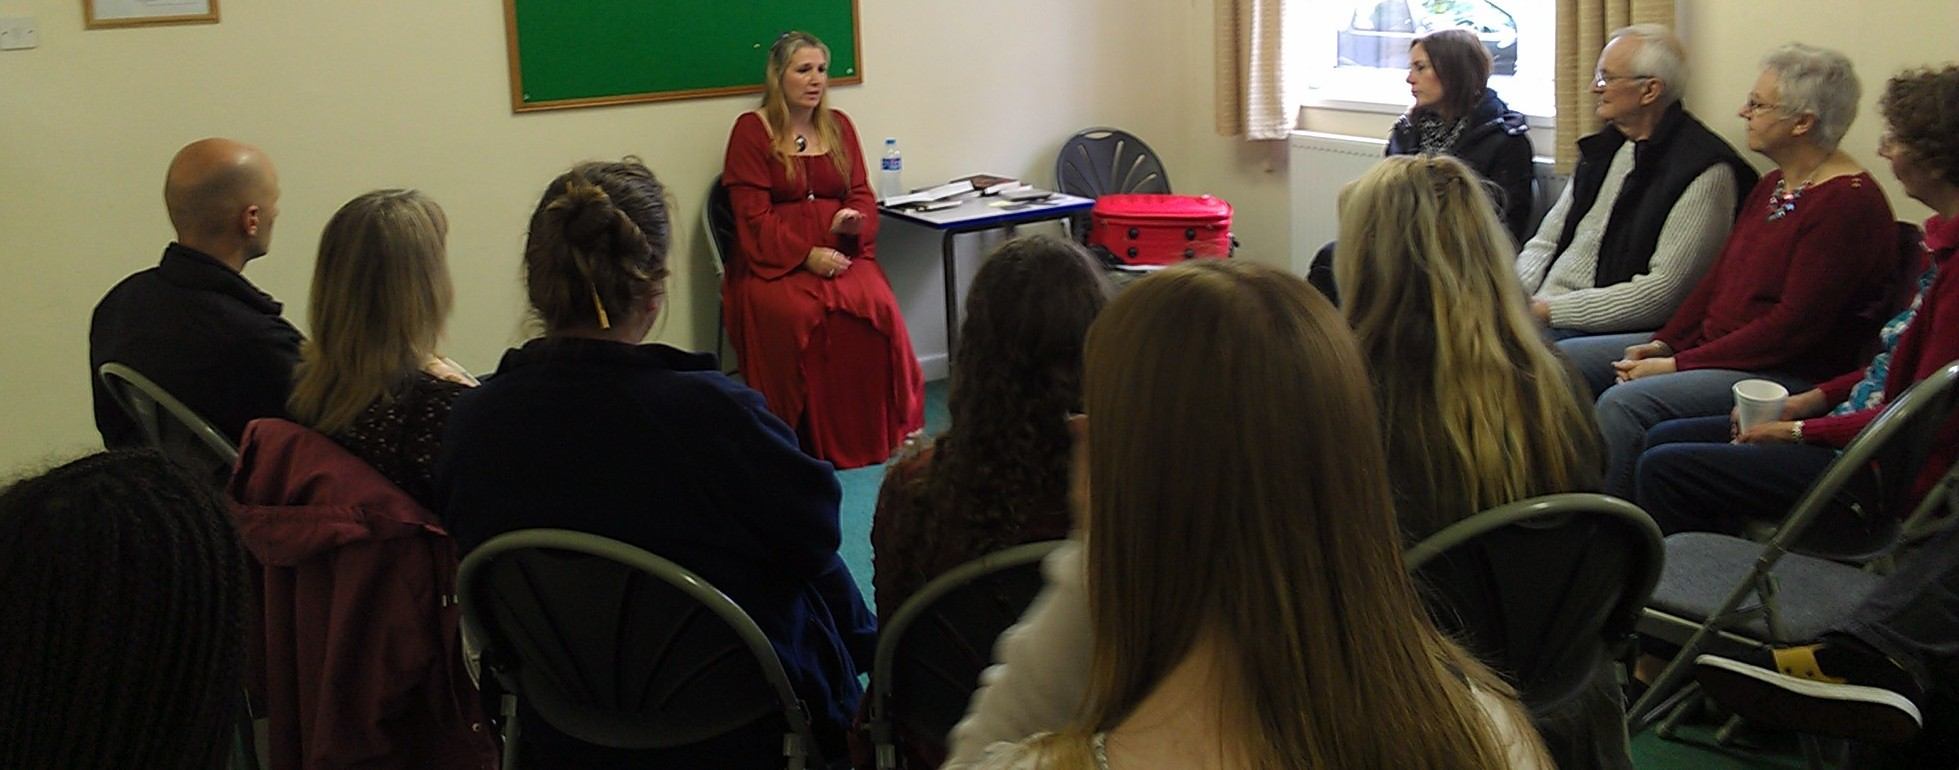 Talk - Petersfield MBS - Nov 2013